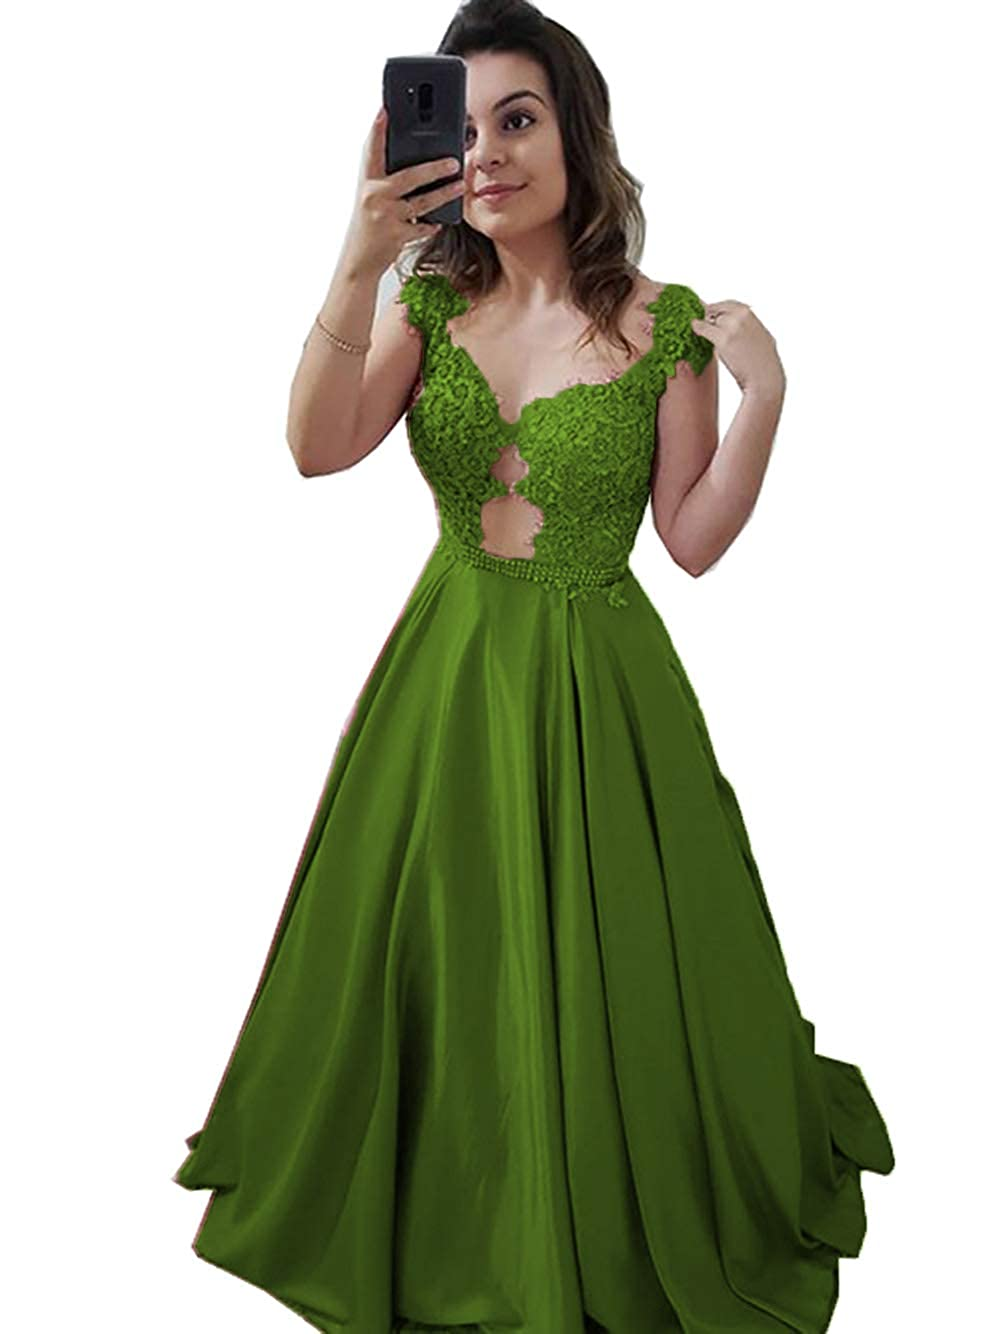 Dark Green YHFDRESS Women's Beaded Lace Applique Prom Dresses Illusion Back Evening Dresses A line Formal Dresses